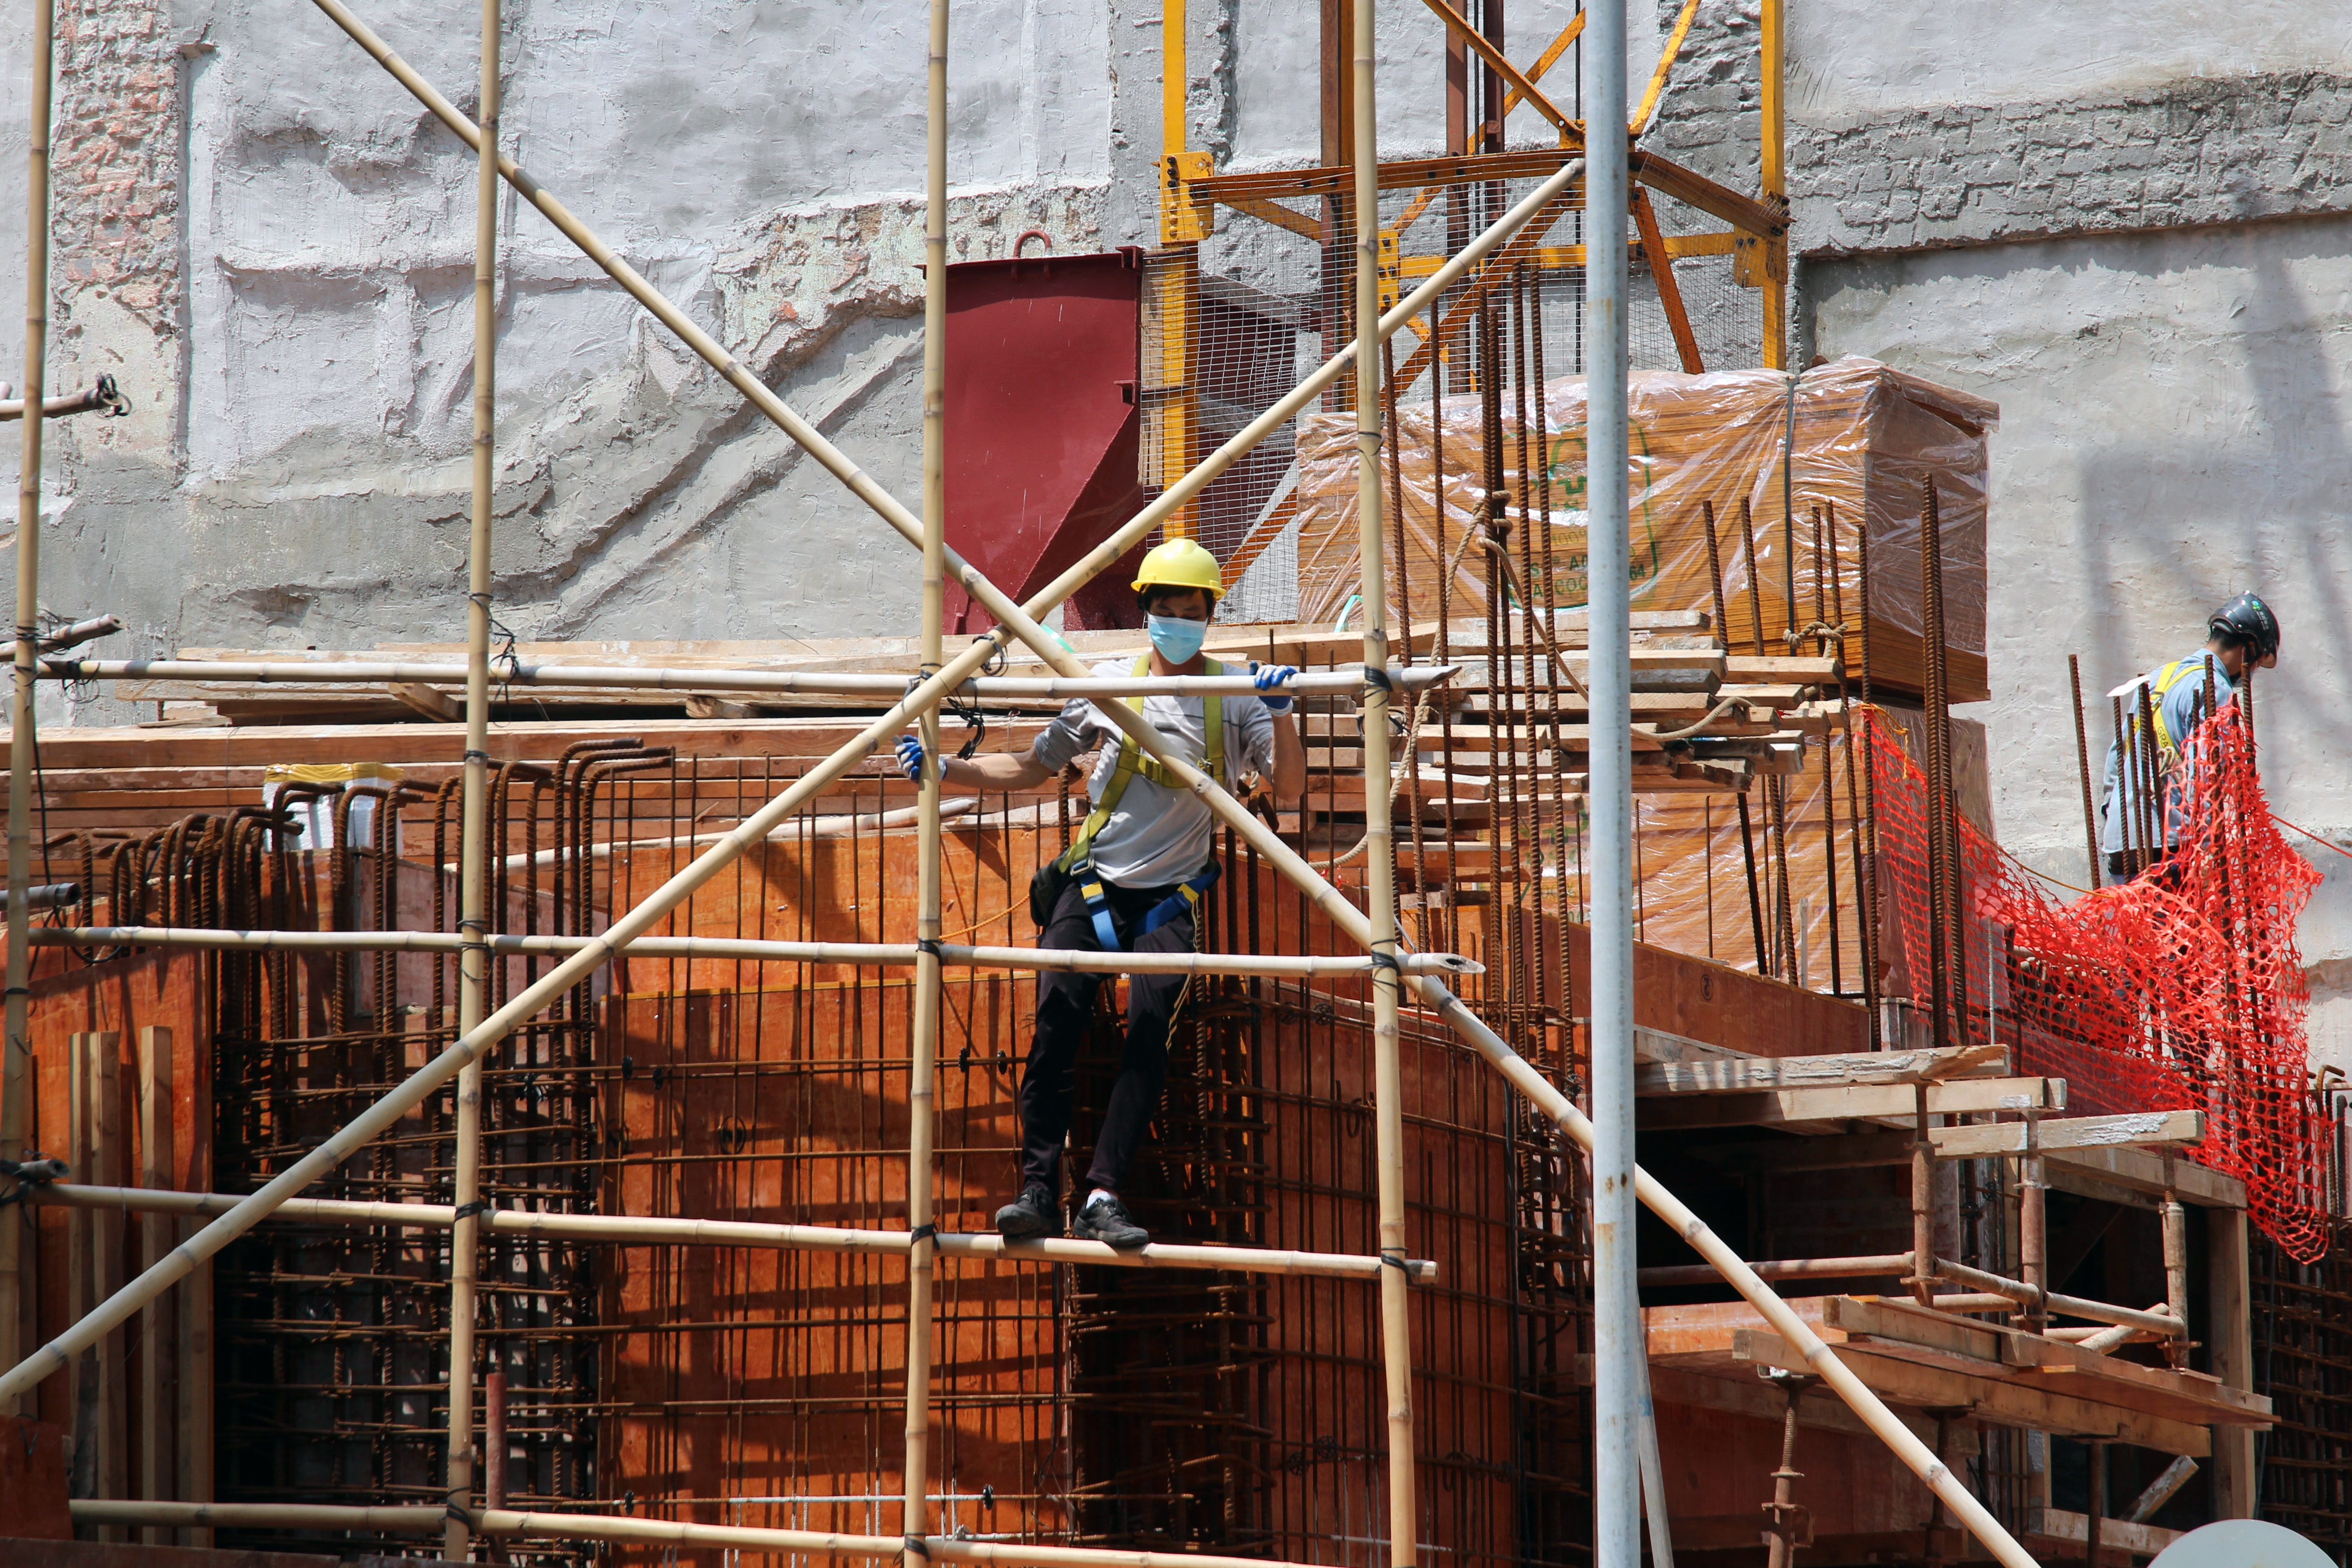 scaffolding with construction workers